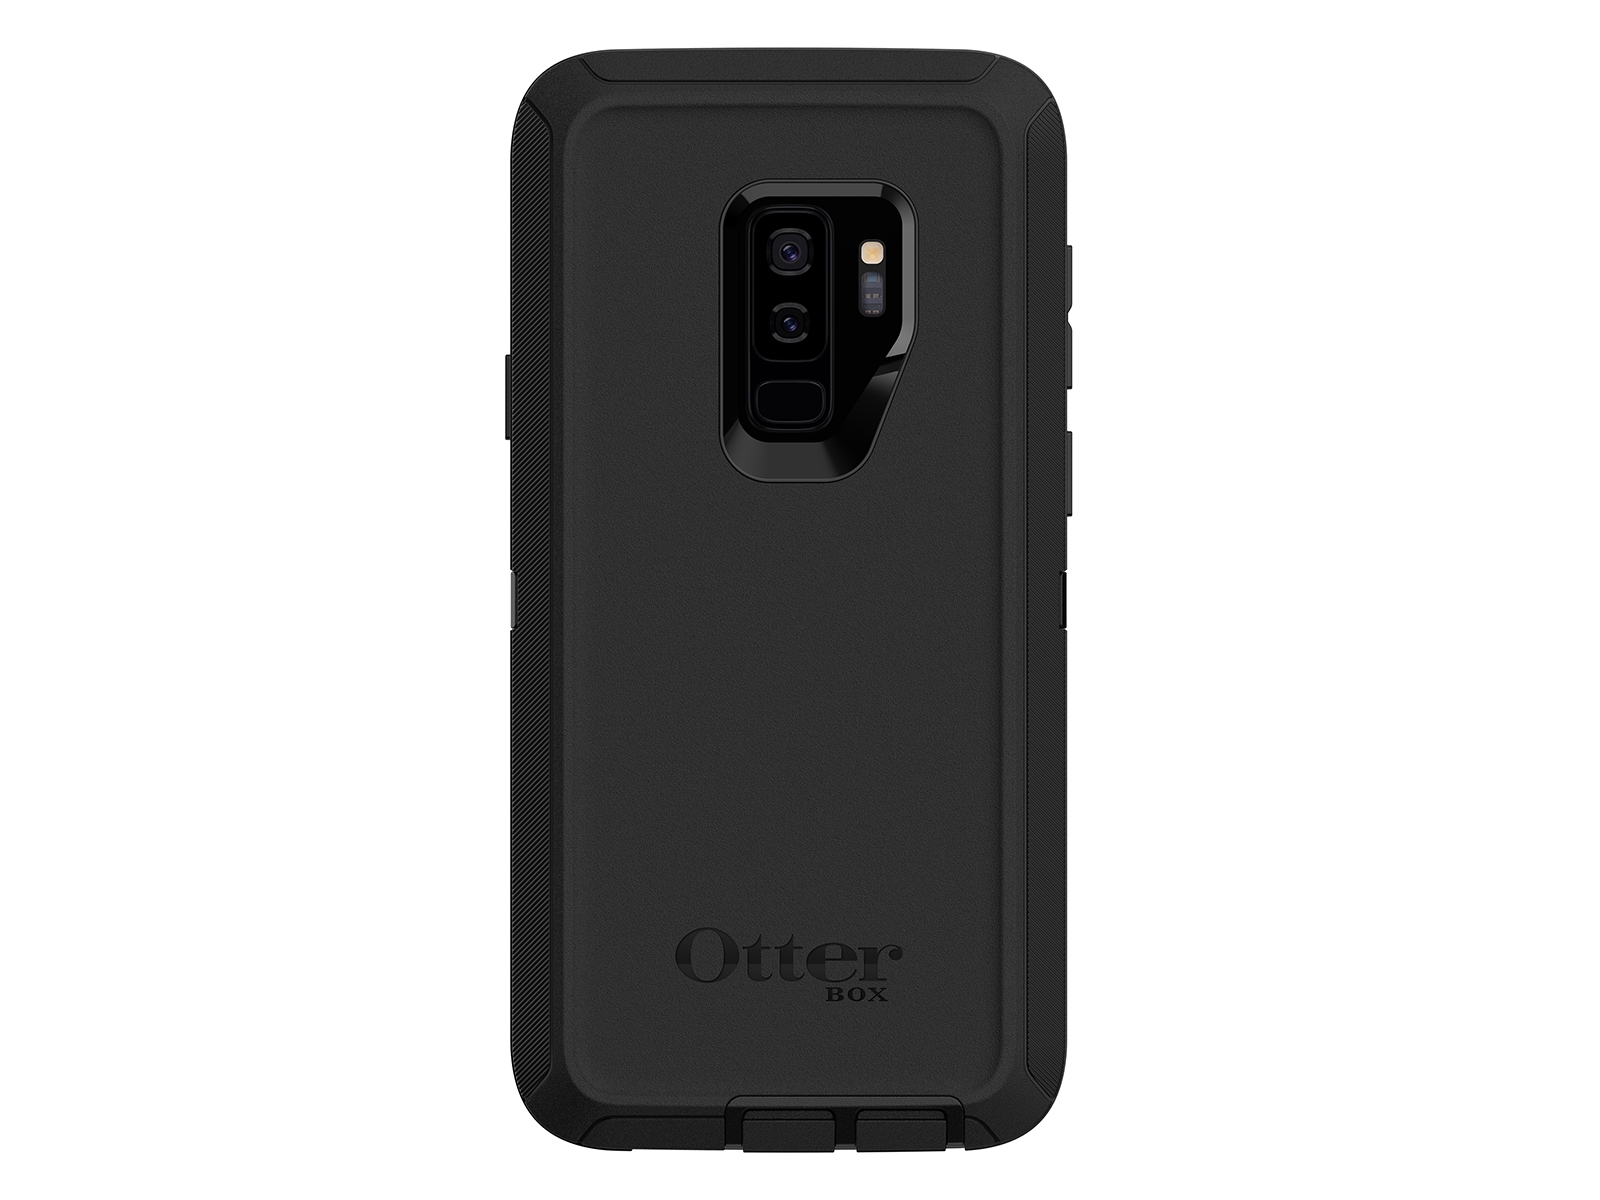 huge selection of 28994 6aca2 OtterBox Defender for Galaxy S9+, Black Mobile Accessories - 77-57992 |  Samsung US